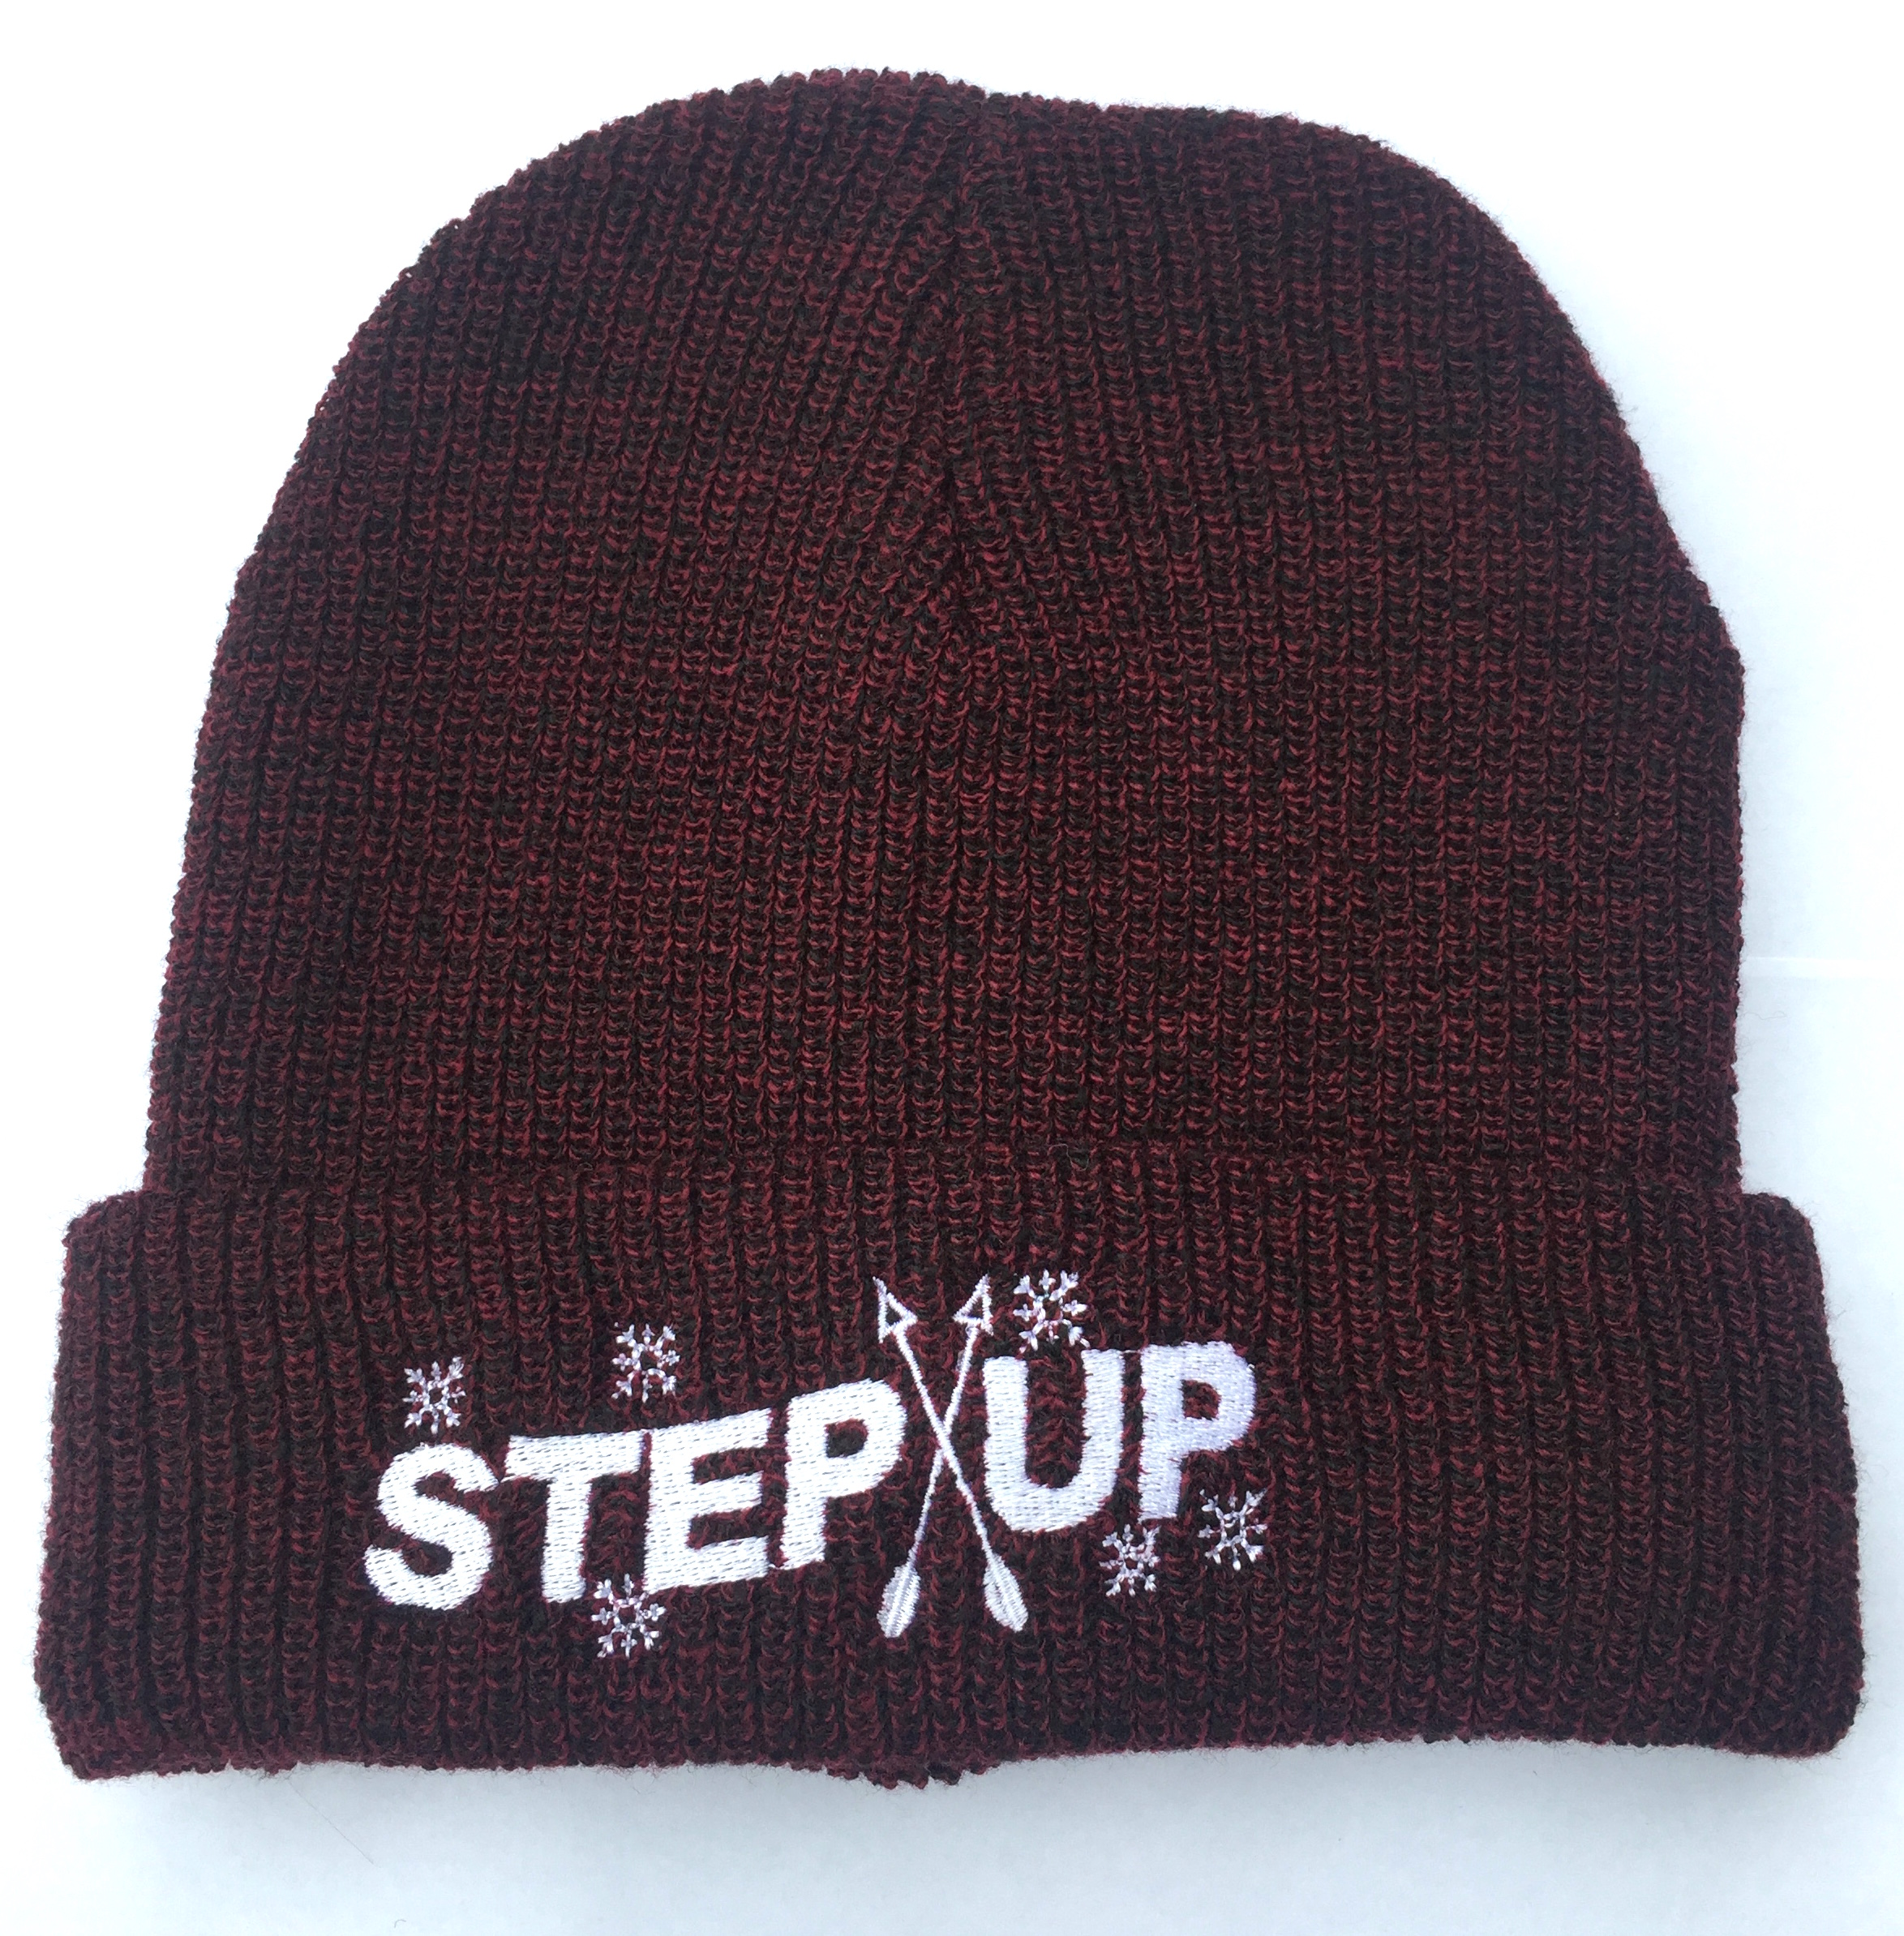 The Winter Warmer Beanie